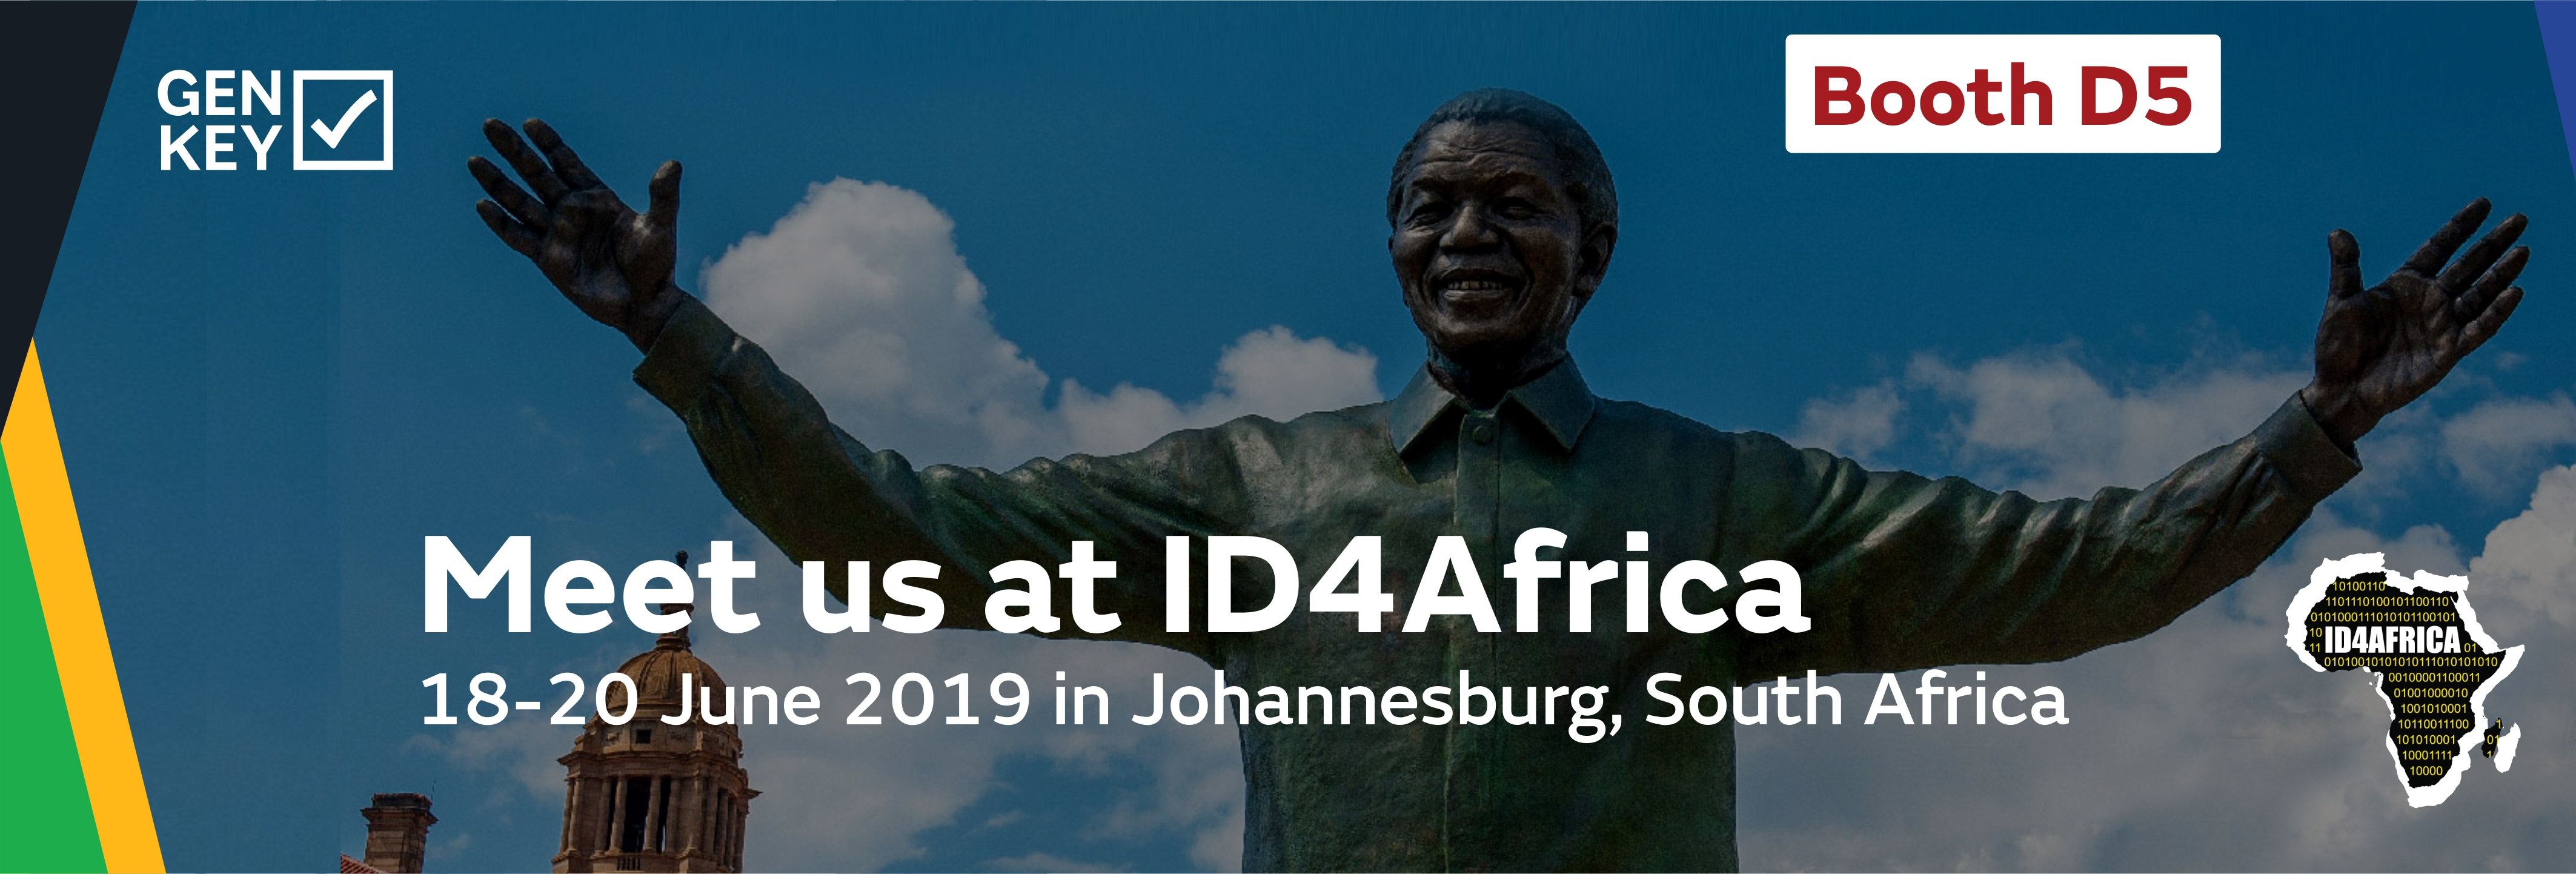 GenKey to showcase Privacy by Design technologies at ID4Africa 2019